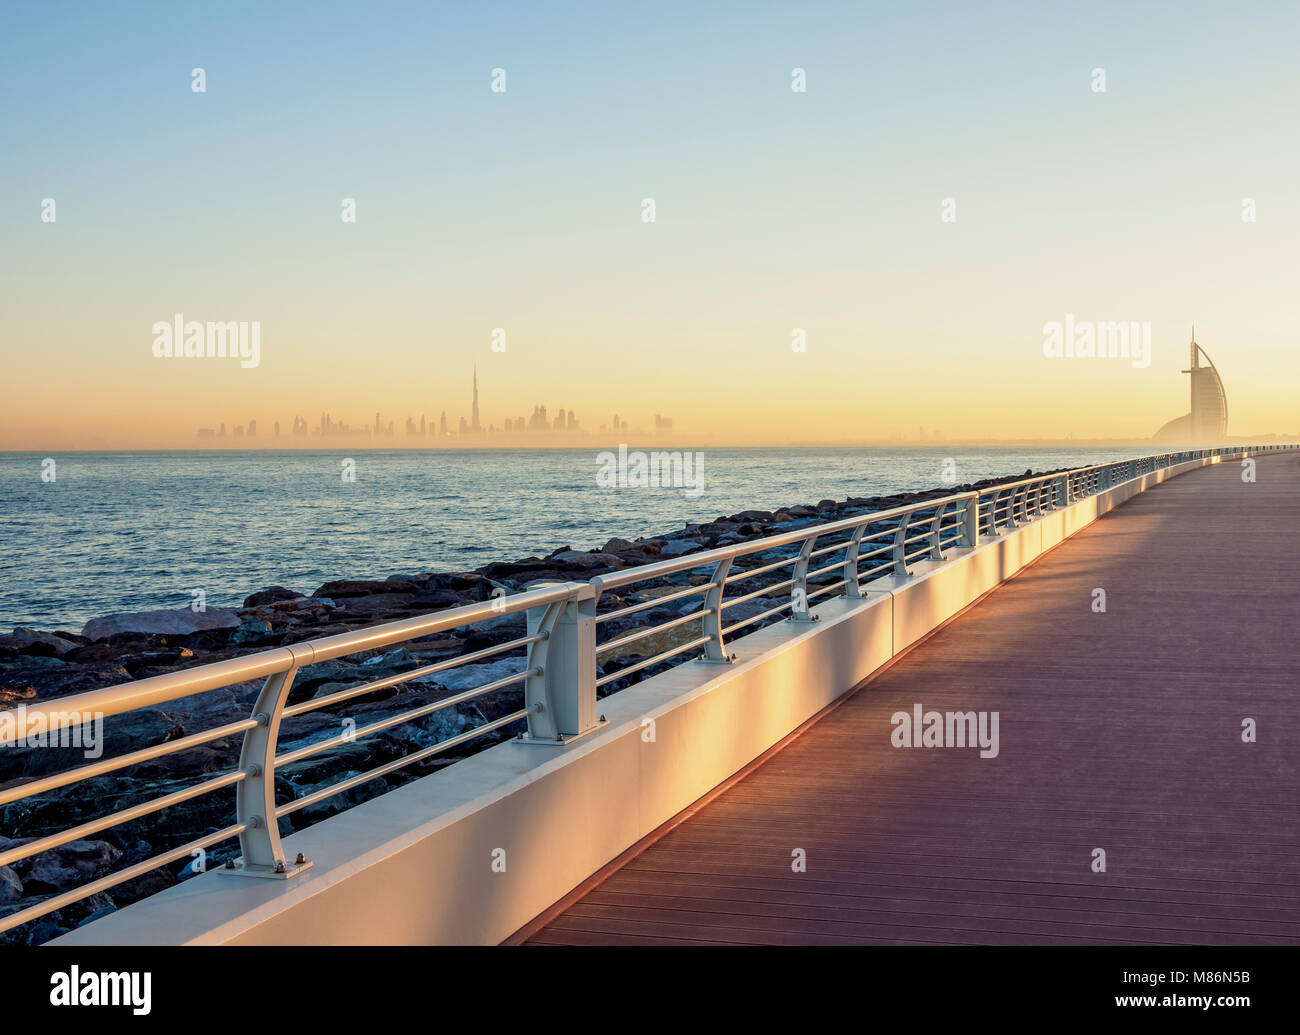 Palm Jumeirah Boardwalk et du centre-ville au lever du soleil, les toits de Dubaï, Émirats Arabes Unis Photo Stock